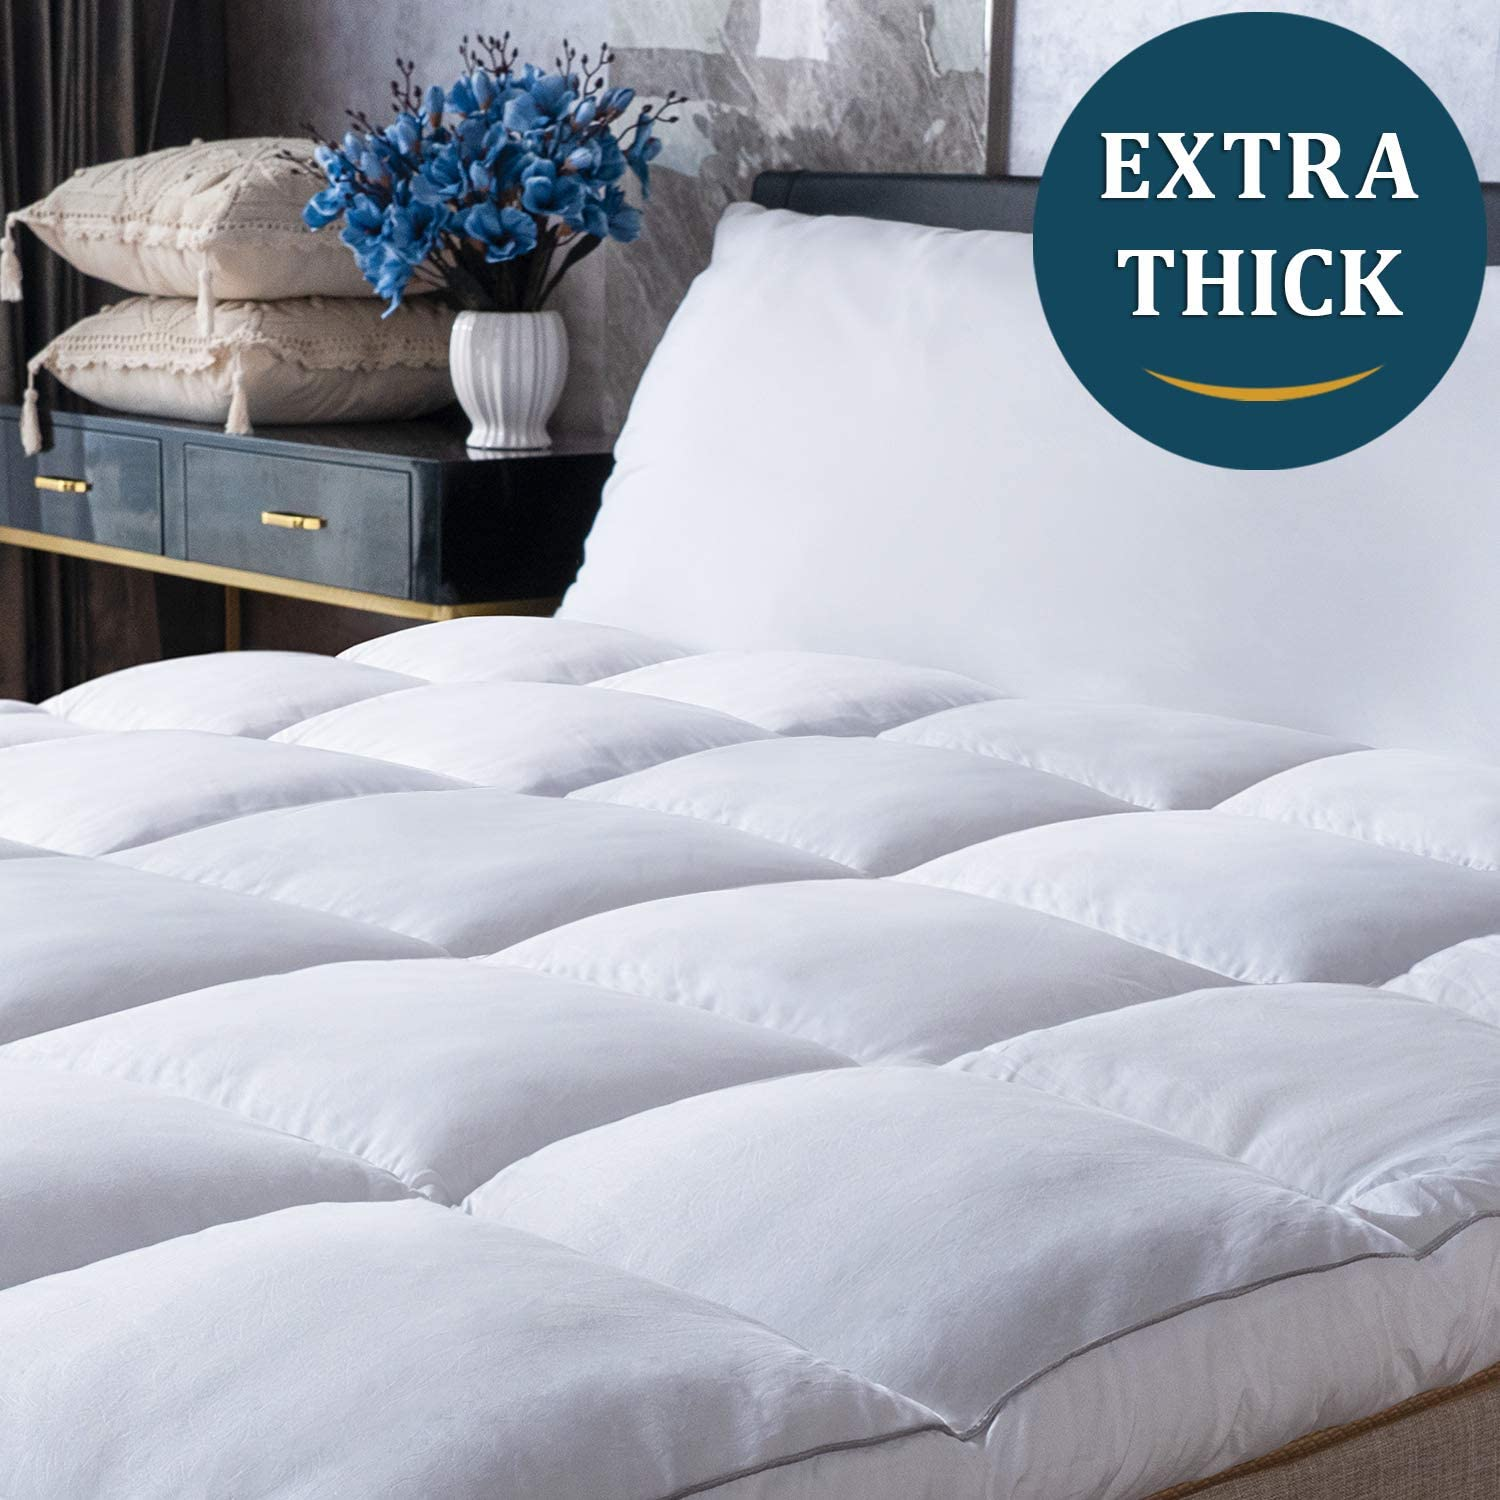 Mattress Topper Queen Size 2 Thick Quilted Hypoallergenic Alternative Down Pillow Top Mattress Cover 5 Year Warranty DUO-V HOME Plush Hotel Quality